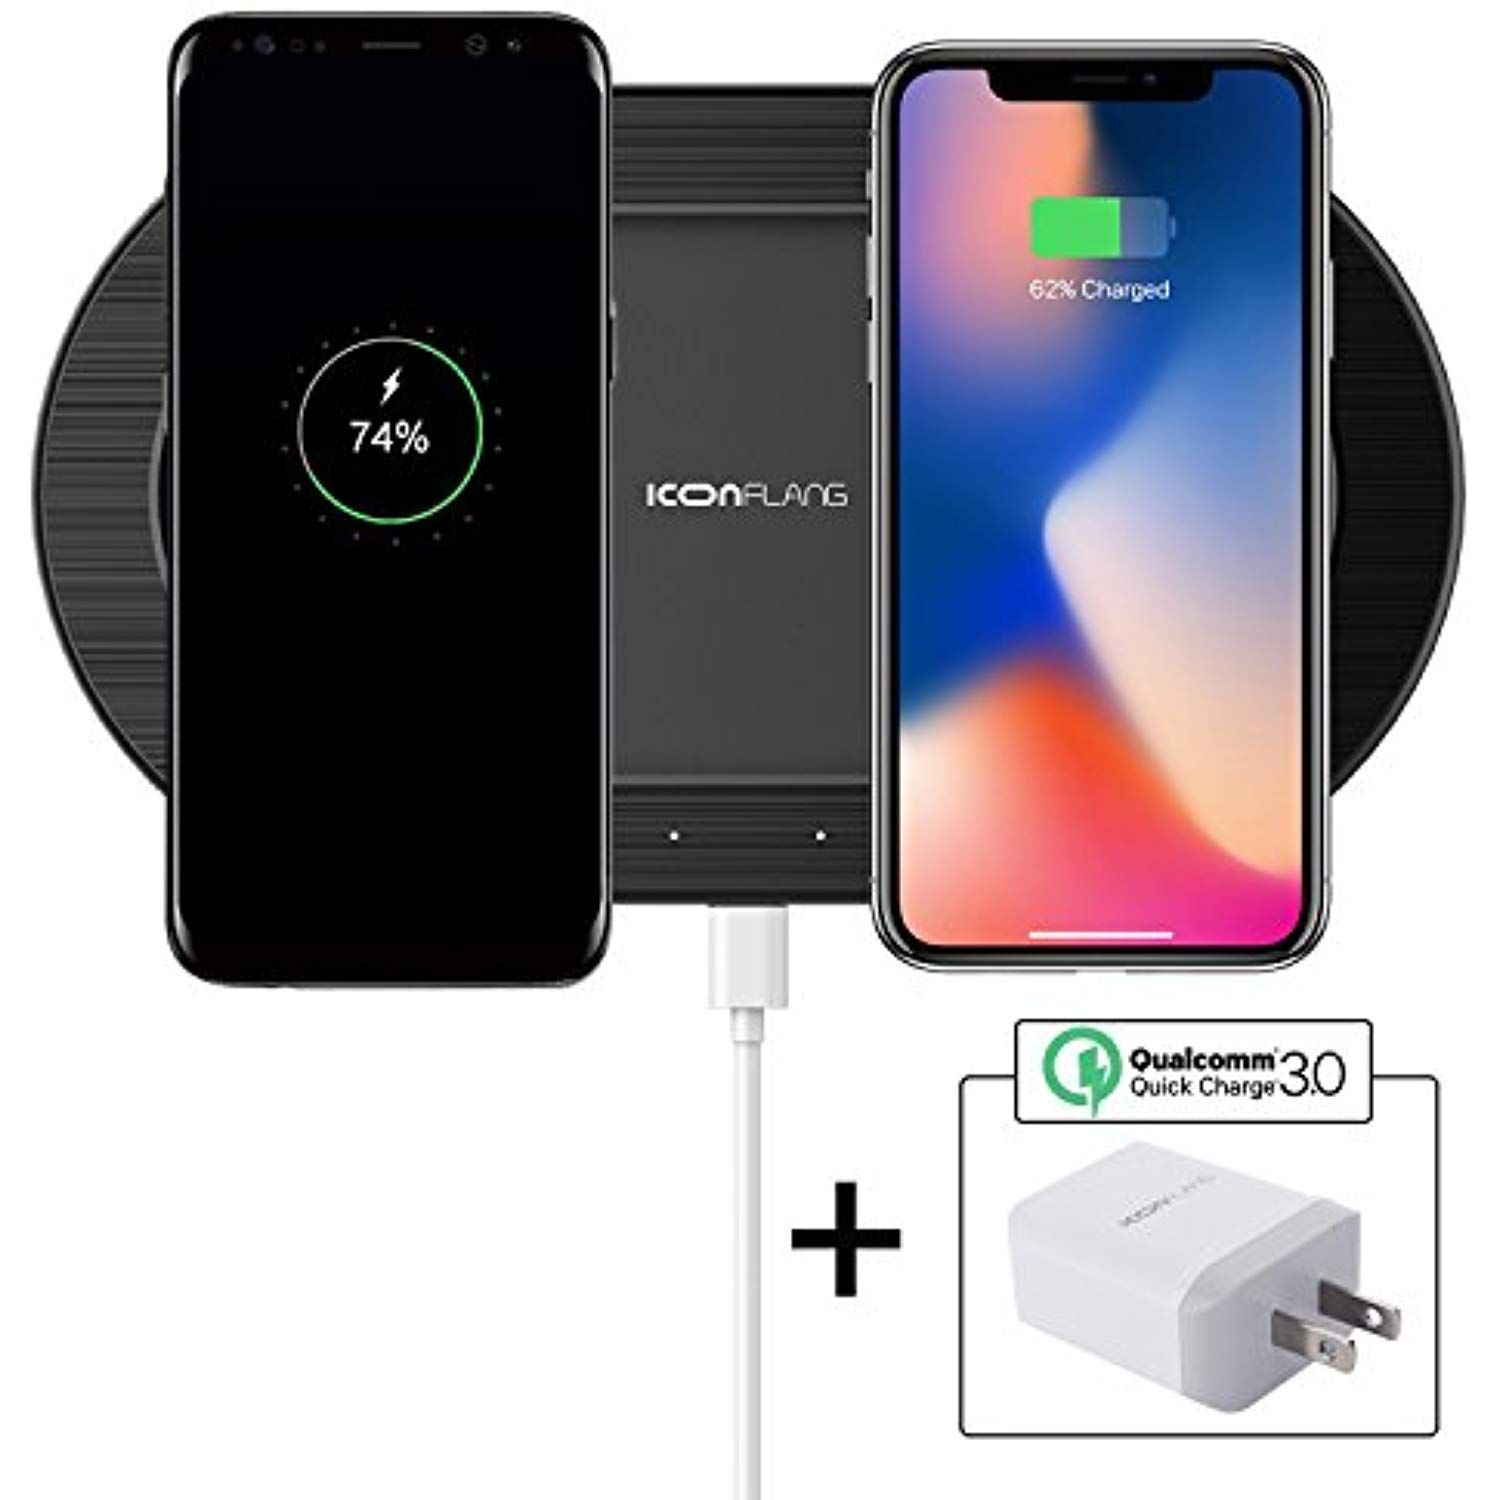 Dual Wireless Charger 2 In 1 Wireless Charging Pad With Qc3 0 Ac Adapter Qi Induction Charger Base For Iphone X I Wireless Charger Wireless Charging Pad Phone